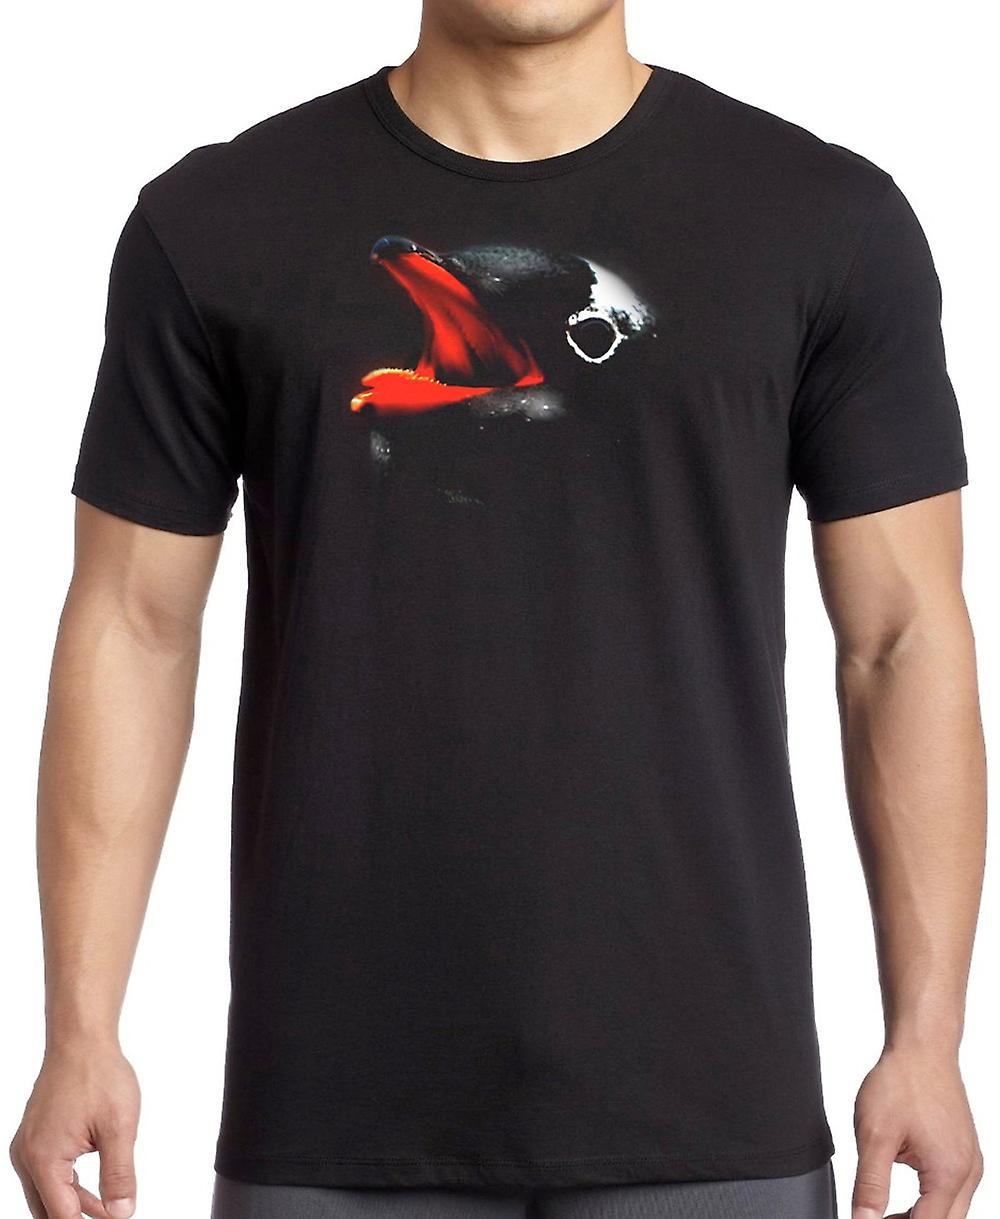 Pinguine-Kopf-Portrait - Cool T Shirt